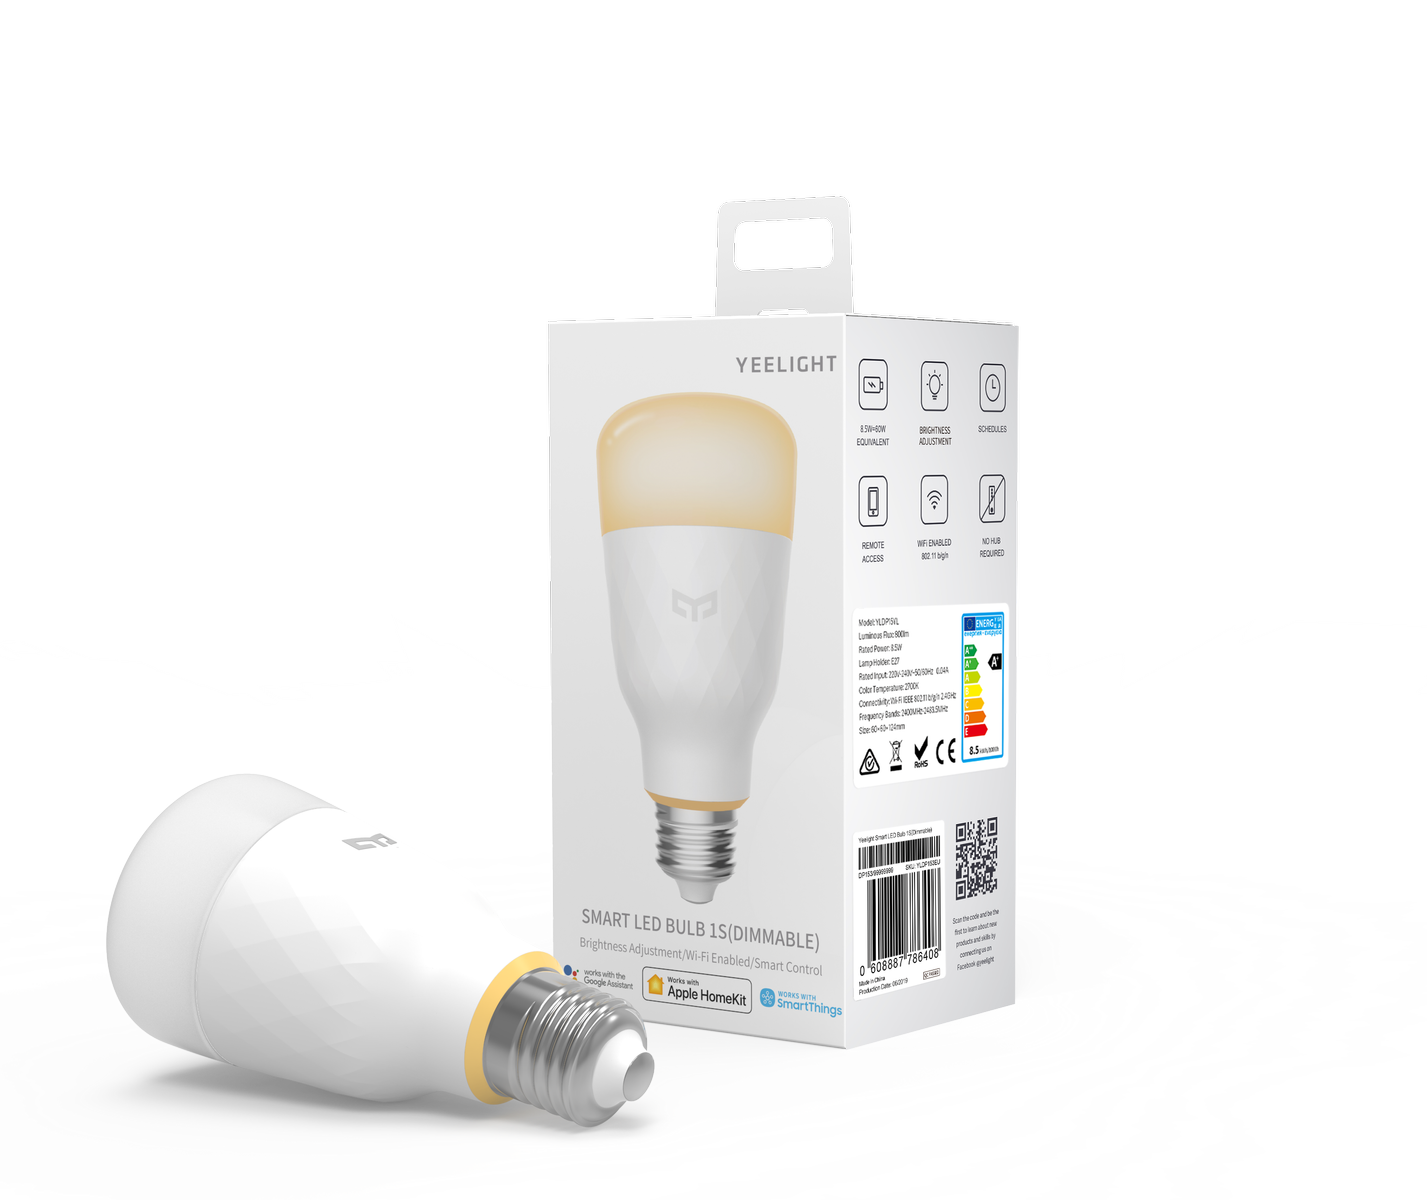 Yeelight LED Bulb 1S Dimmable - Lampadina Led WiFi E27 8,5W 800lm 2700K